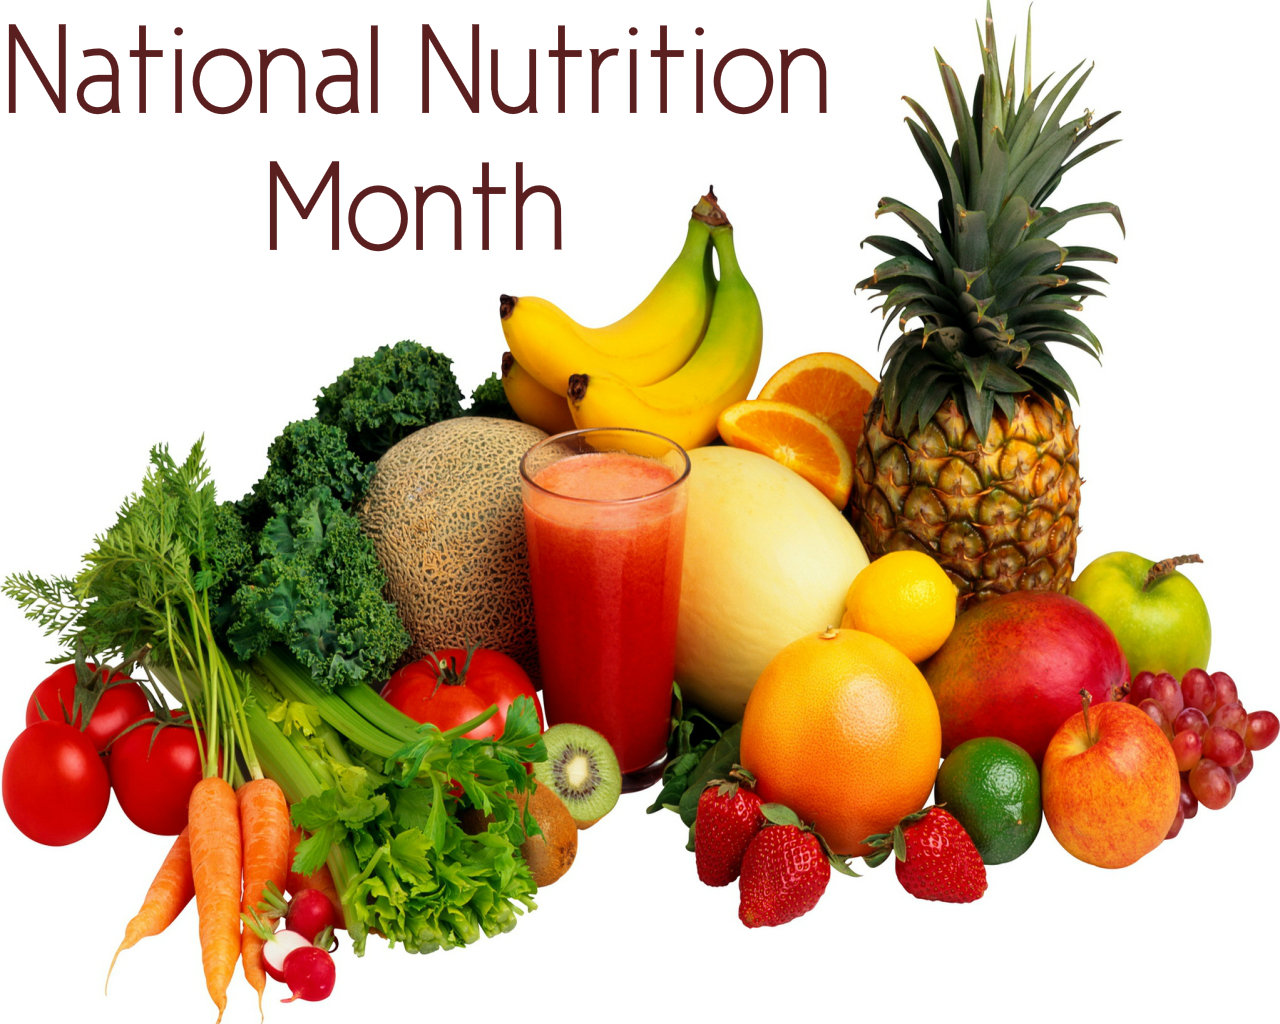 It's National Nutrition Month - Eat Healthy, Eat Tasty